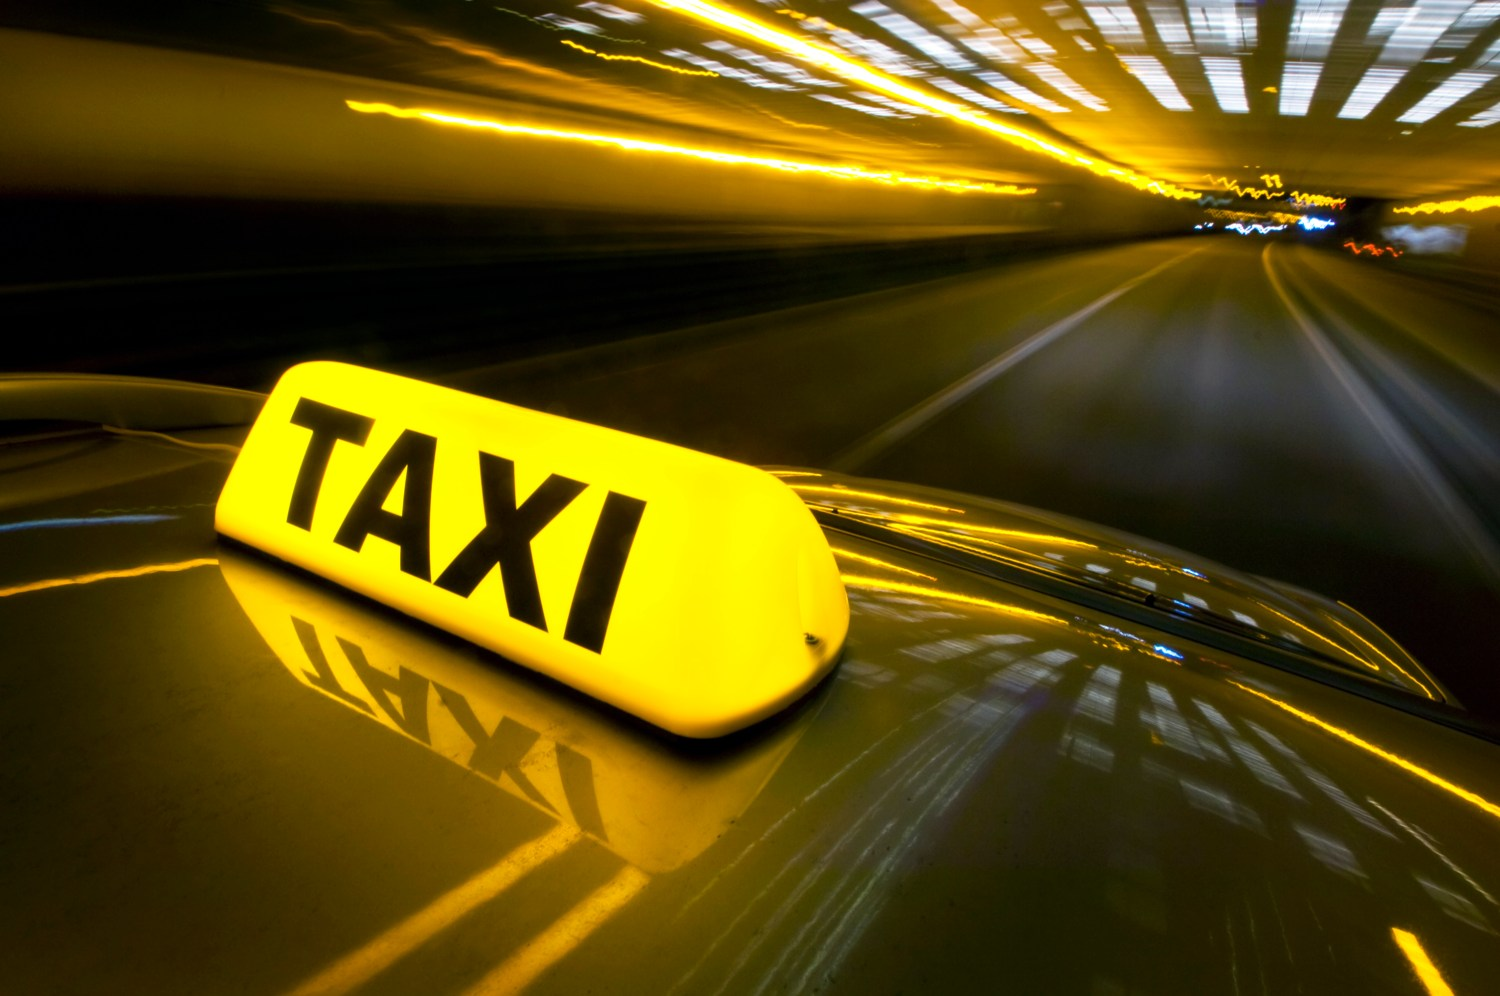 Taxify steadily gaining ground in Africa as Uber falls victim of its pricing | TechMoran